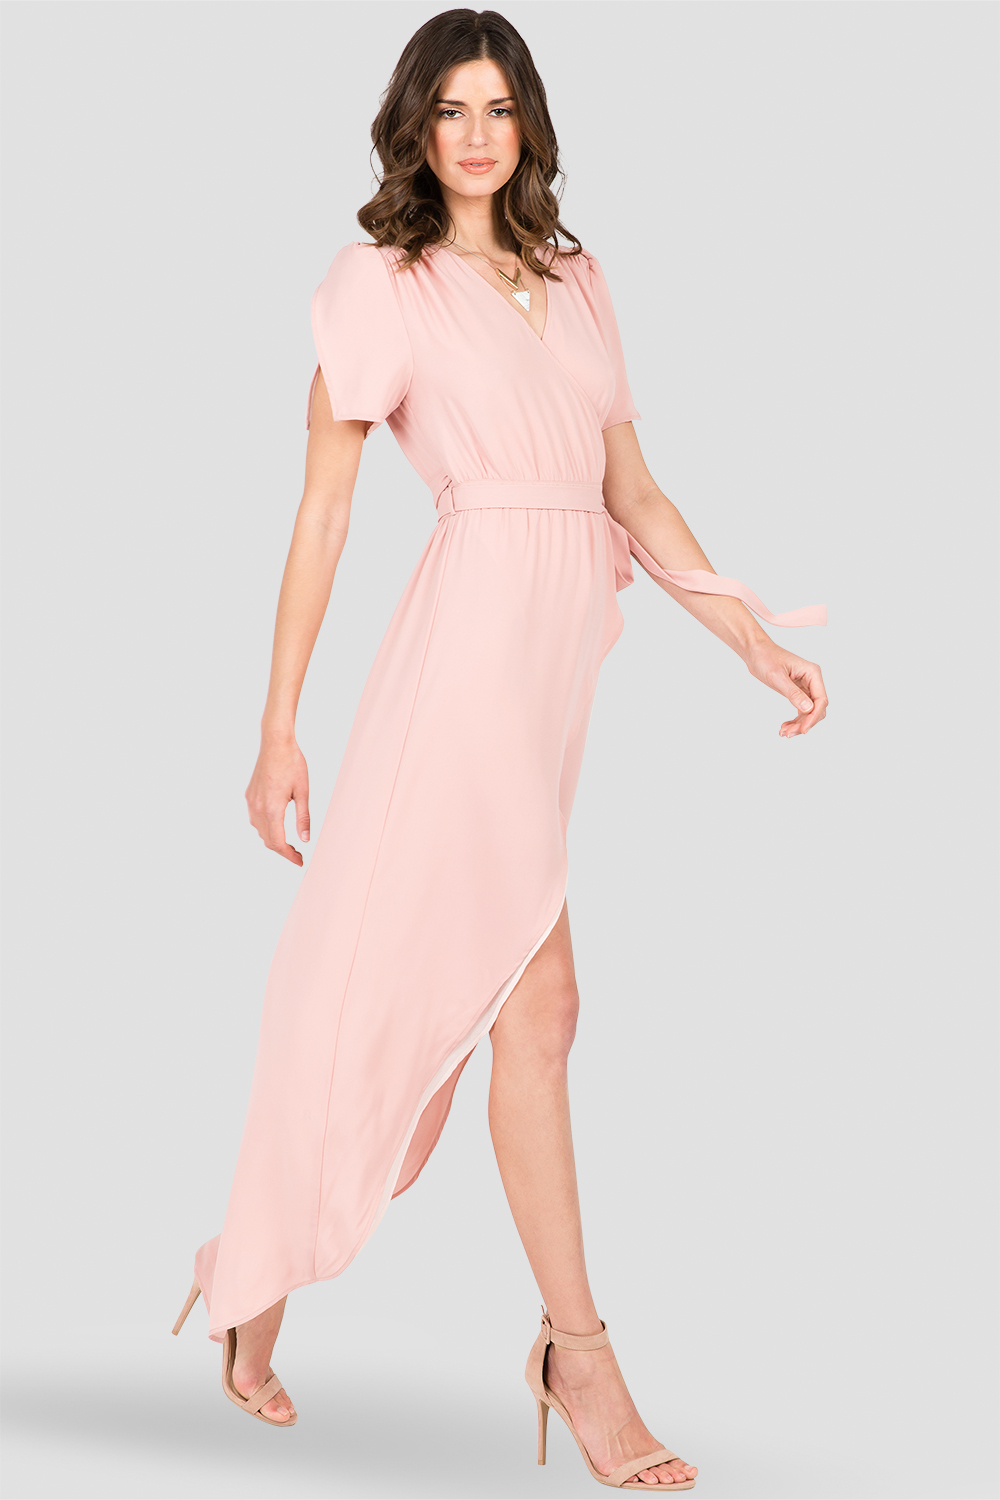 Women's Rose Pink V-Neck Maxi Dress